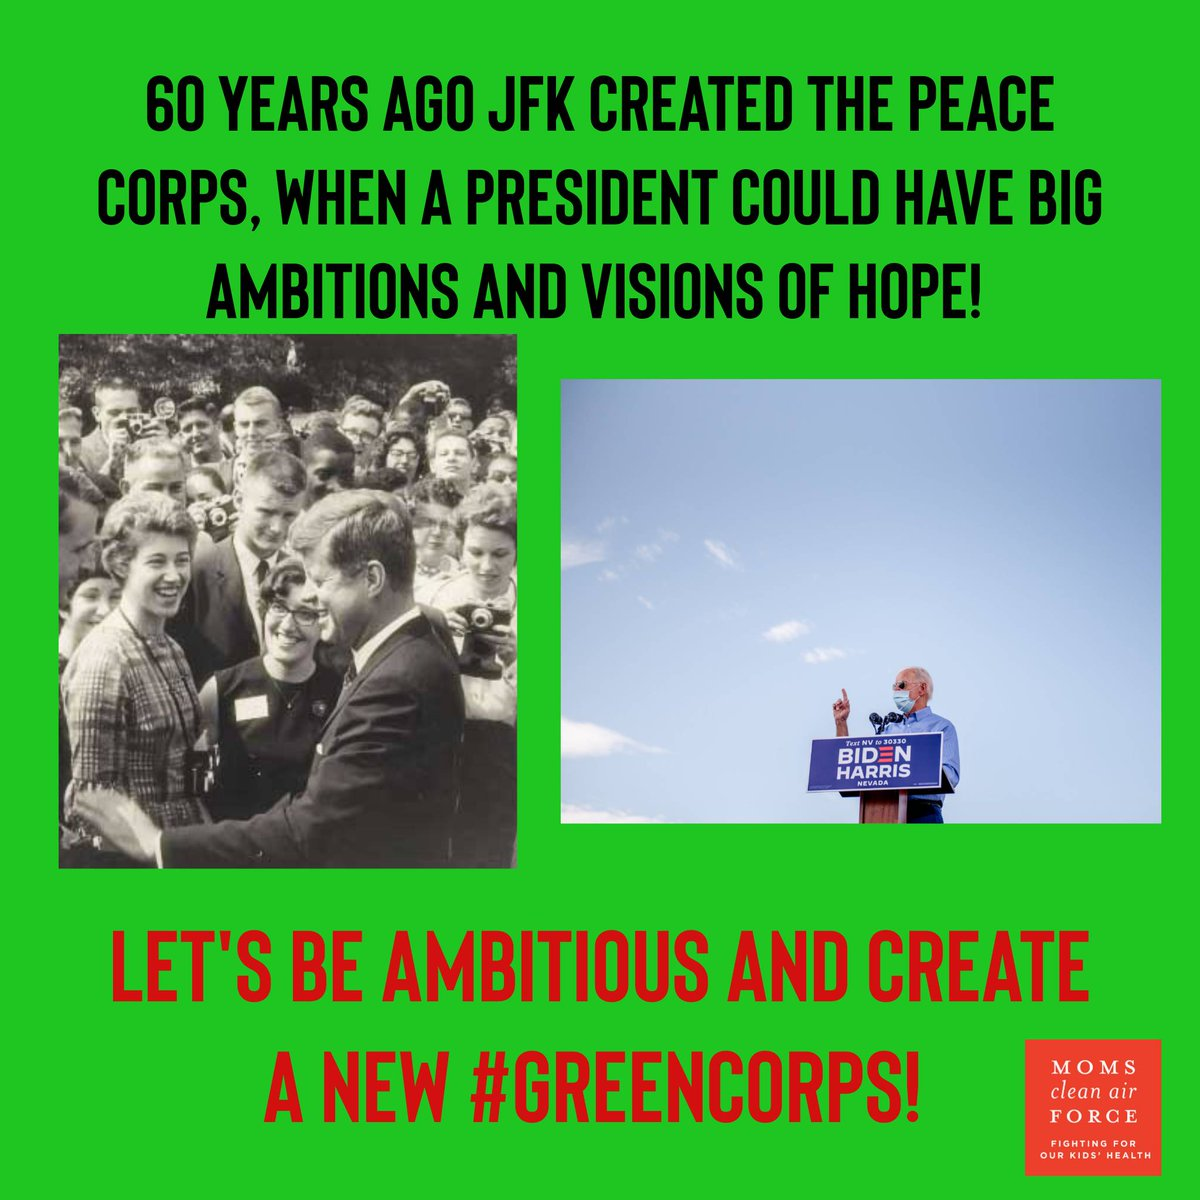 It's time for a #GreenCorps! ❤️ ❤️ Agree? 🤔   #timetoact #ActOnClimate #ClimateEmergency #ClimateCrisis #climateaction #AllOfGovt #ConfirmClimate #rebuildepa